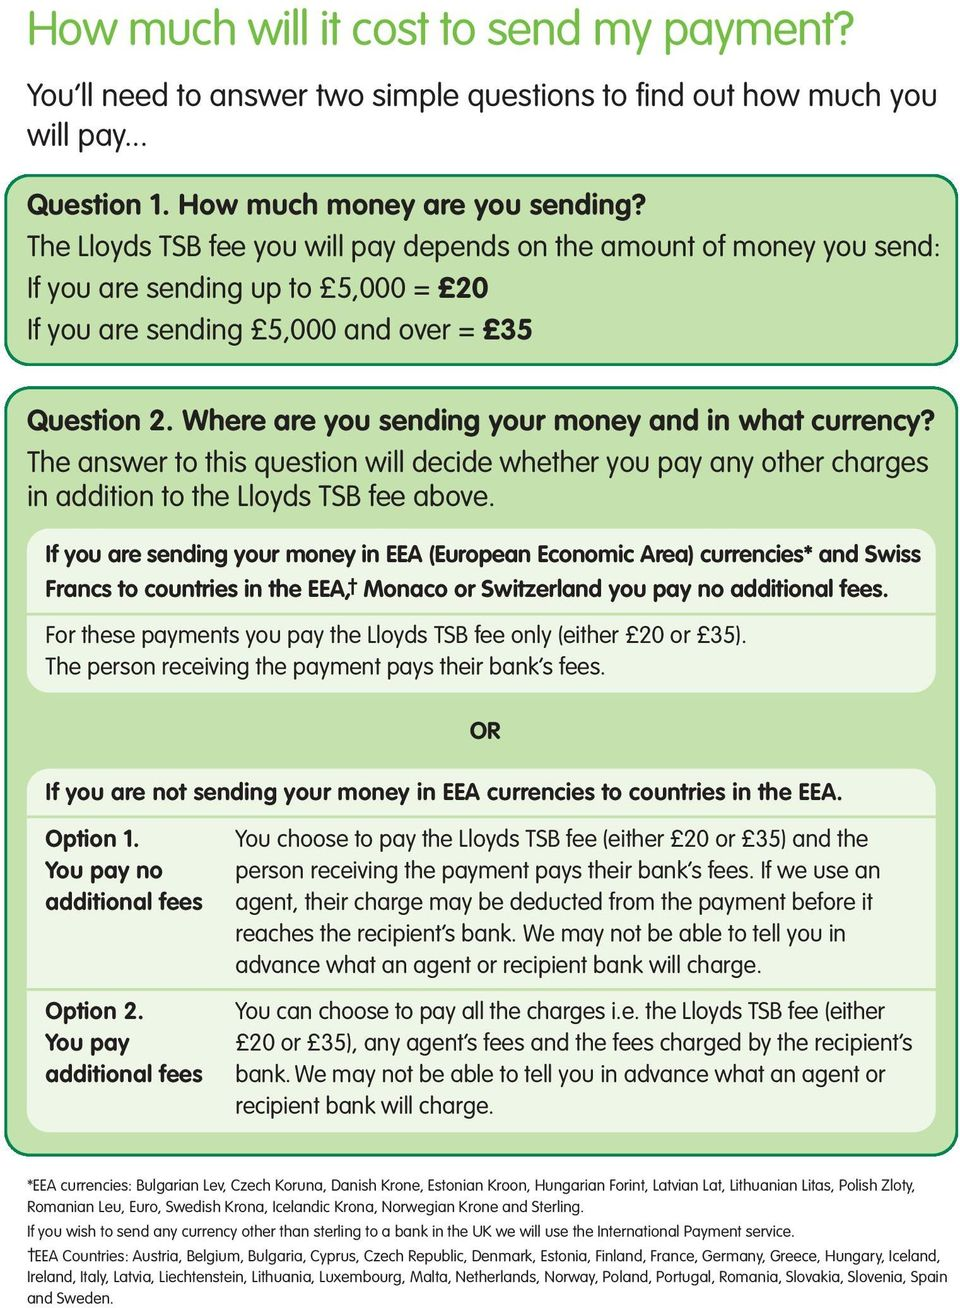 Where are you sending your money and in what currency? The answer to this question will decide whether you pay any other charges in addition to the Lloyds TSB fee above.